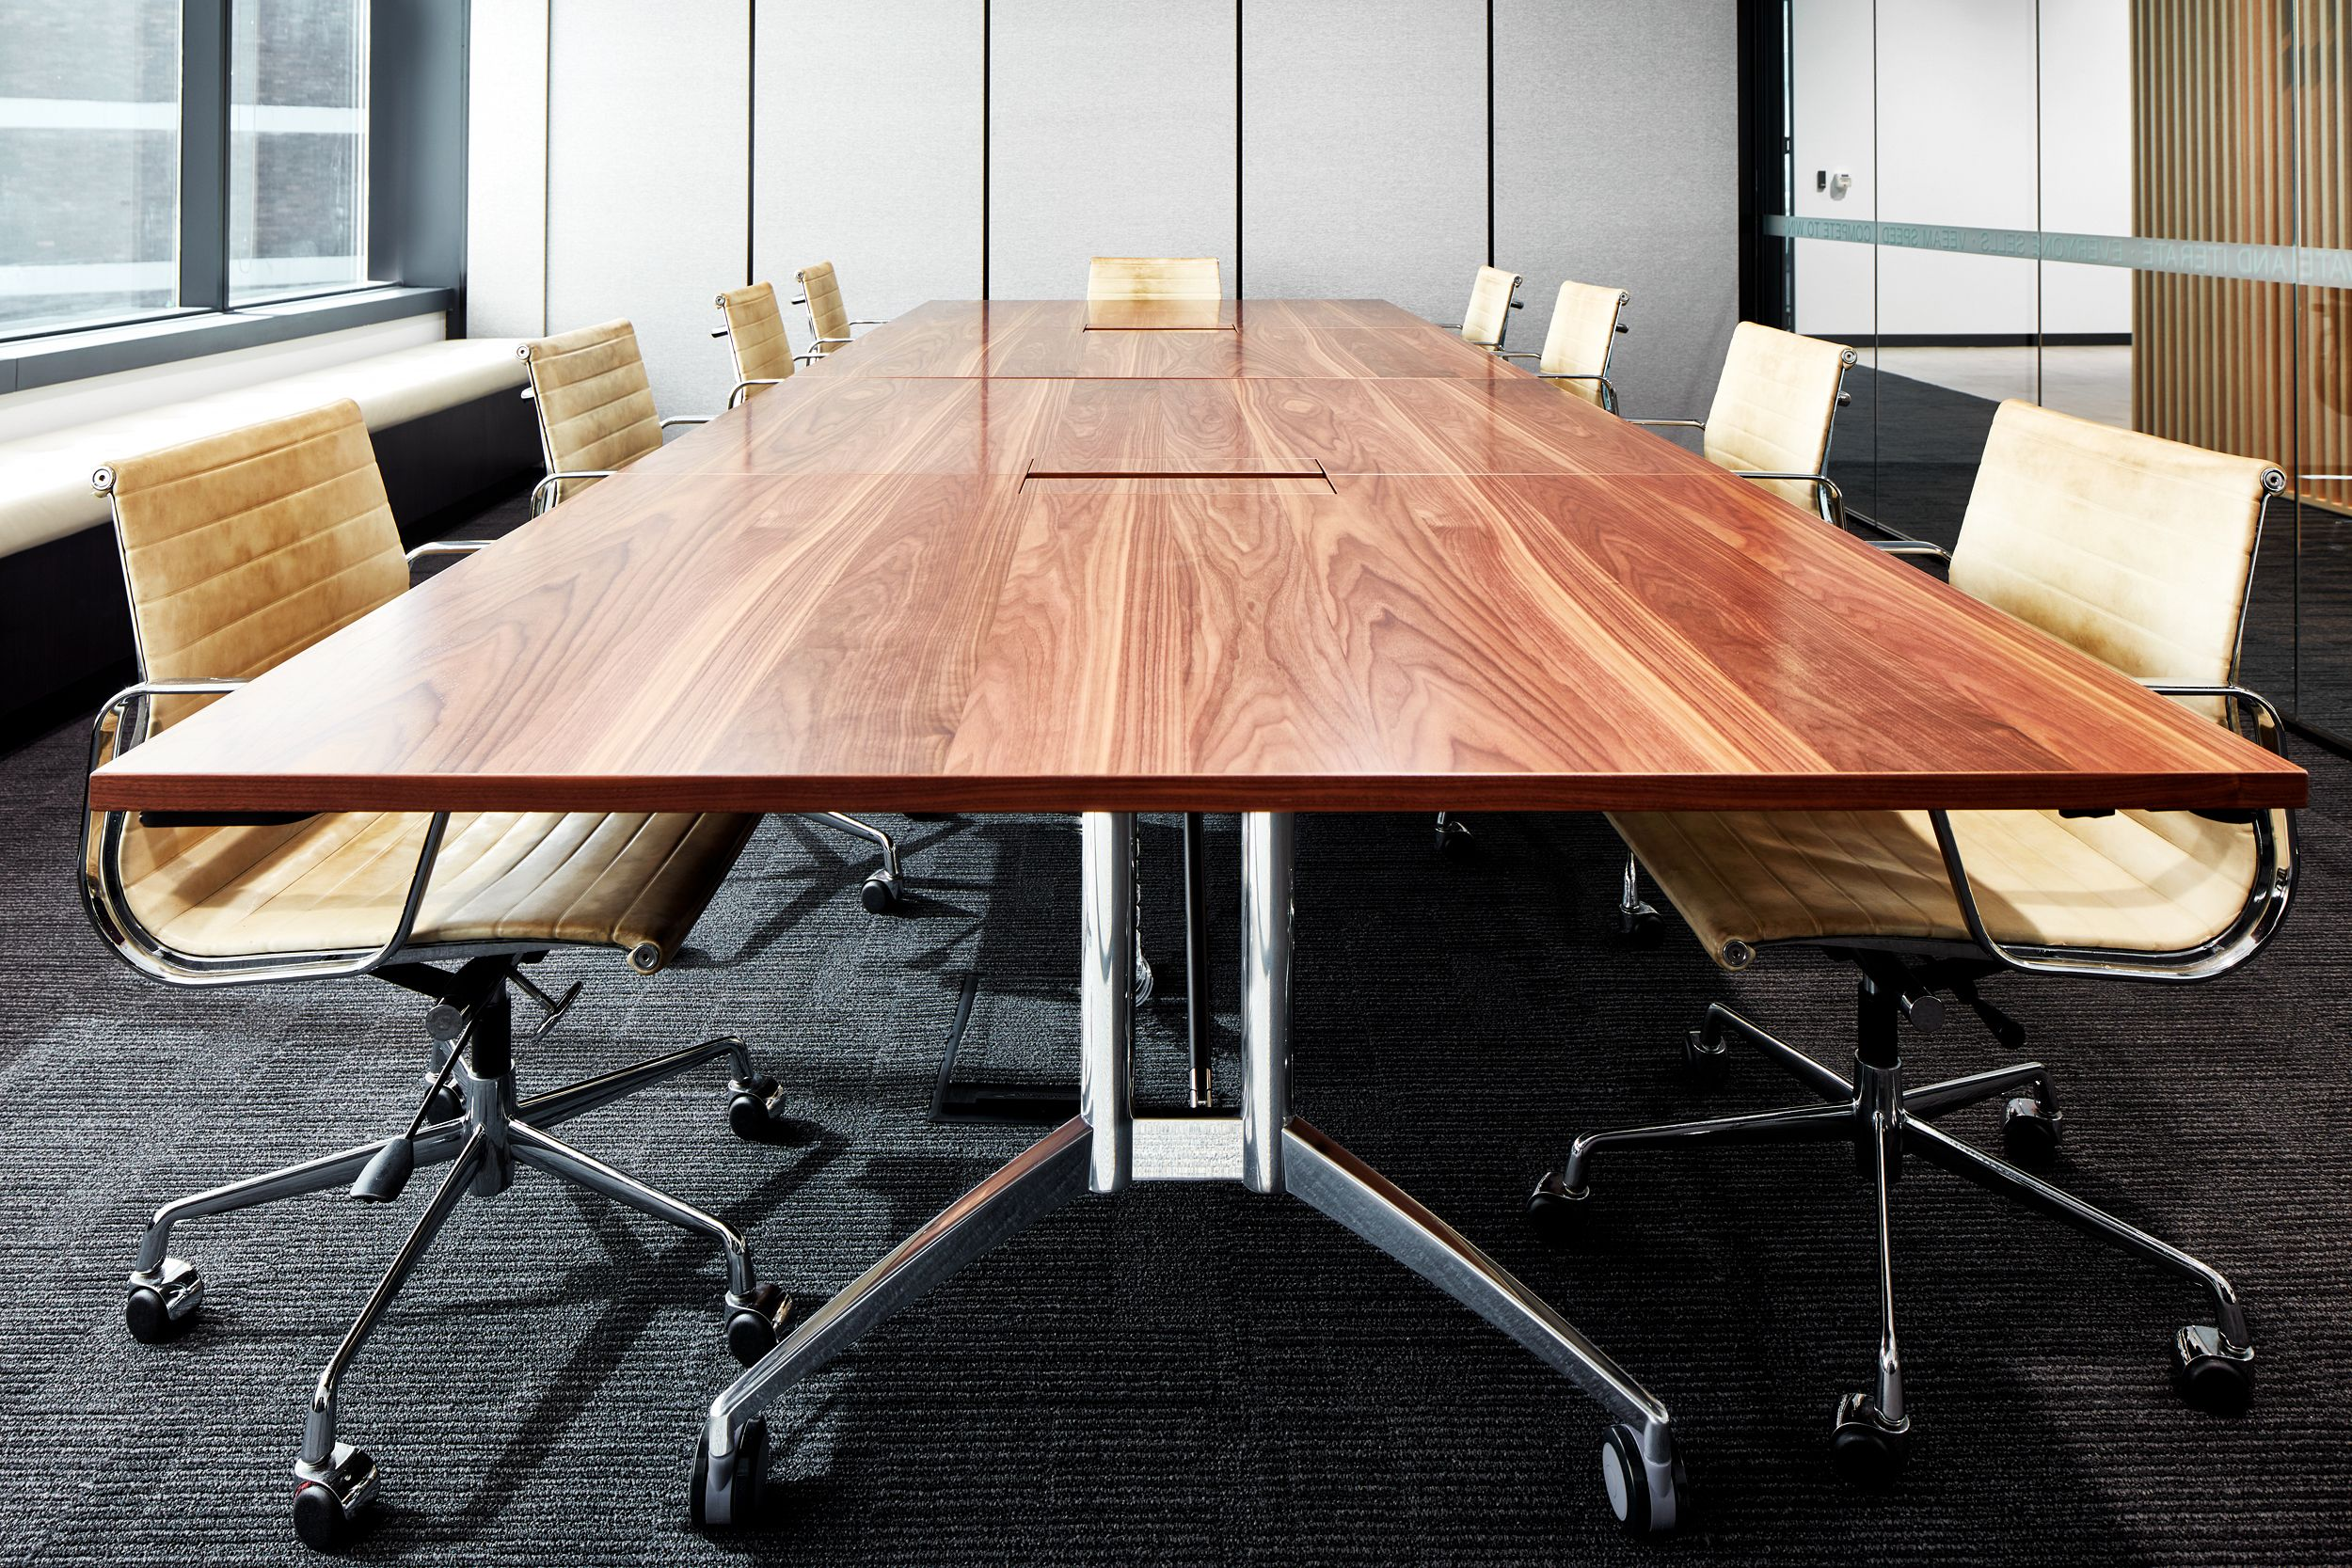 Agility folding table  Boardroom table, Table, Folding table